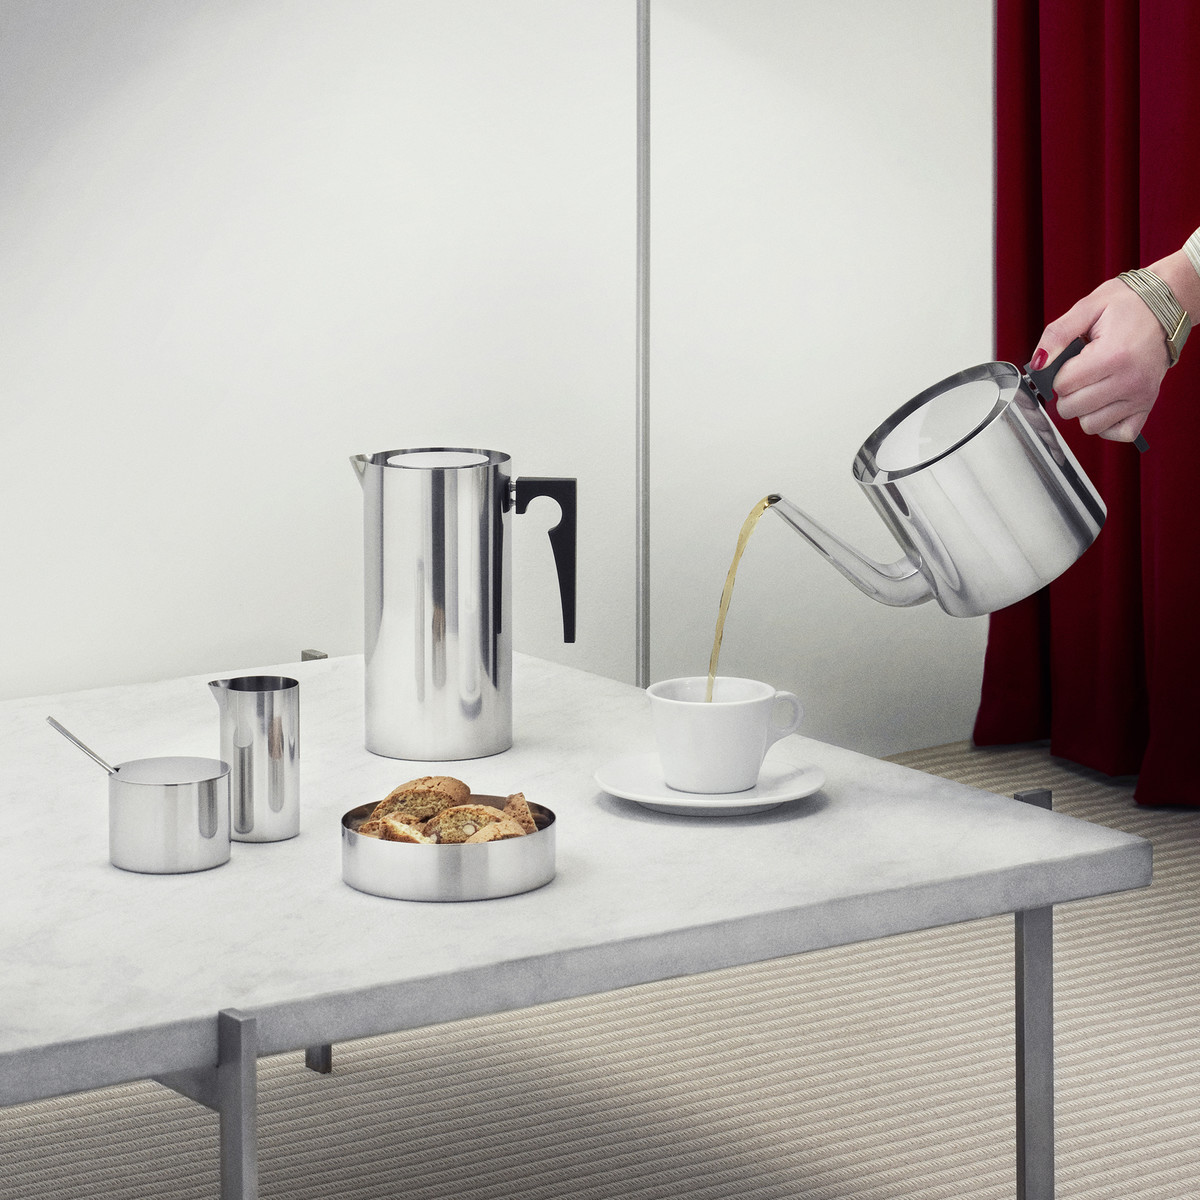 Stelton - Kitchenware cylinda, press coffee pot, tea pot, bread tray, milk jug and sugar bowl in stainless steel